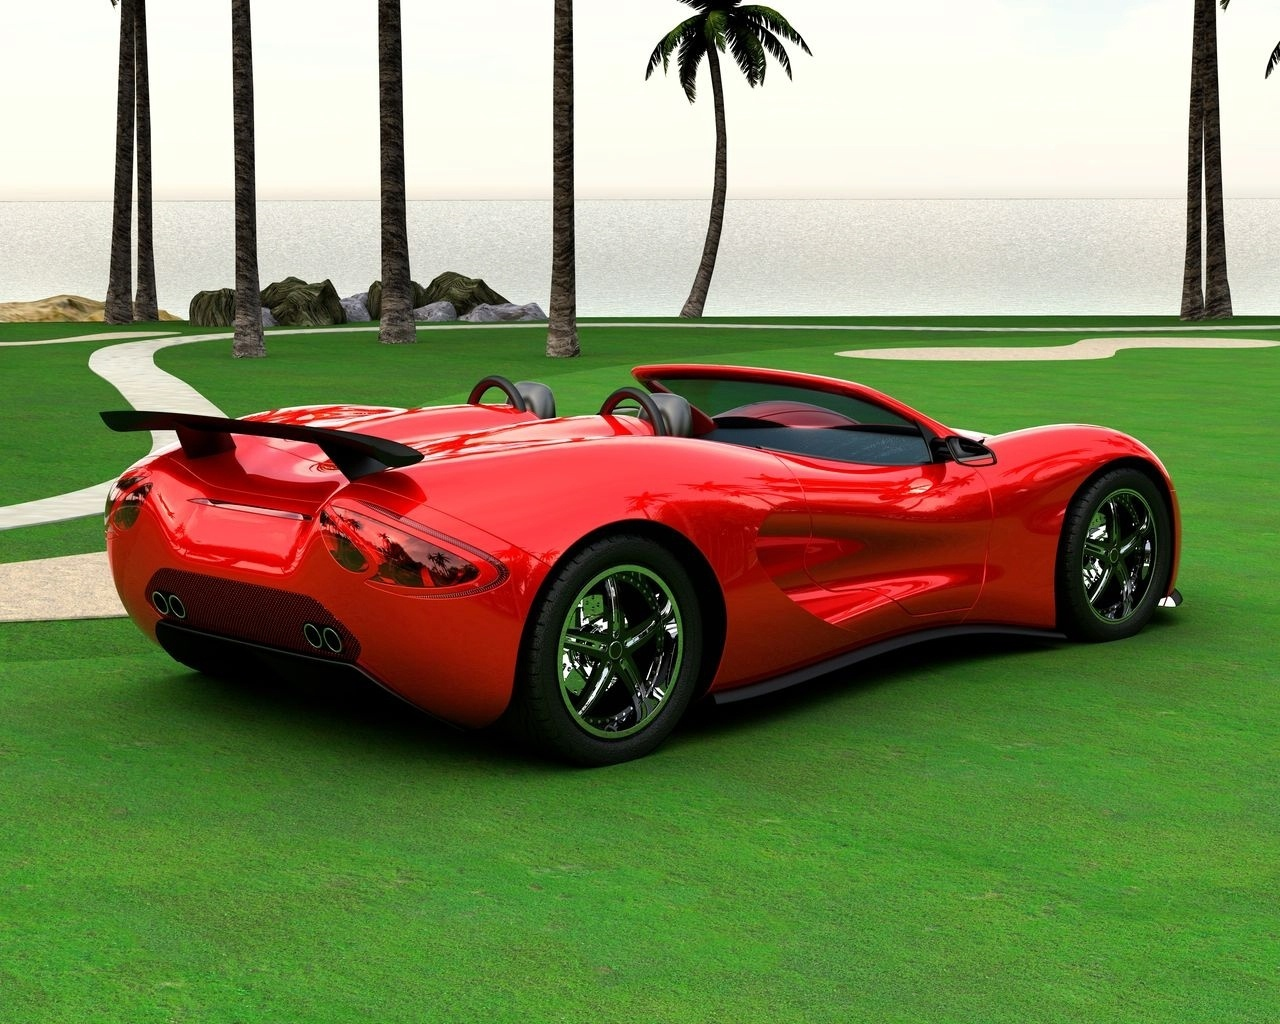 http://images2.fanpop.com/image/photos/10800000/RONN-SCORPION-sports-cars-10850363-1280-1024.jpg